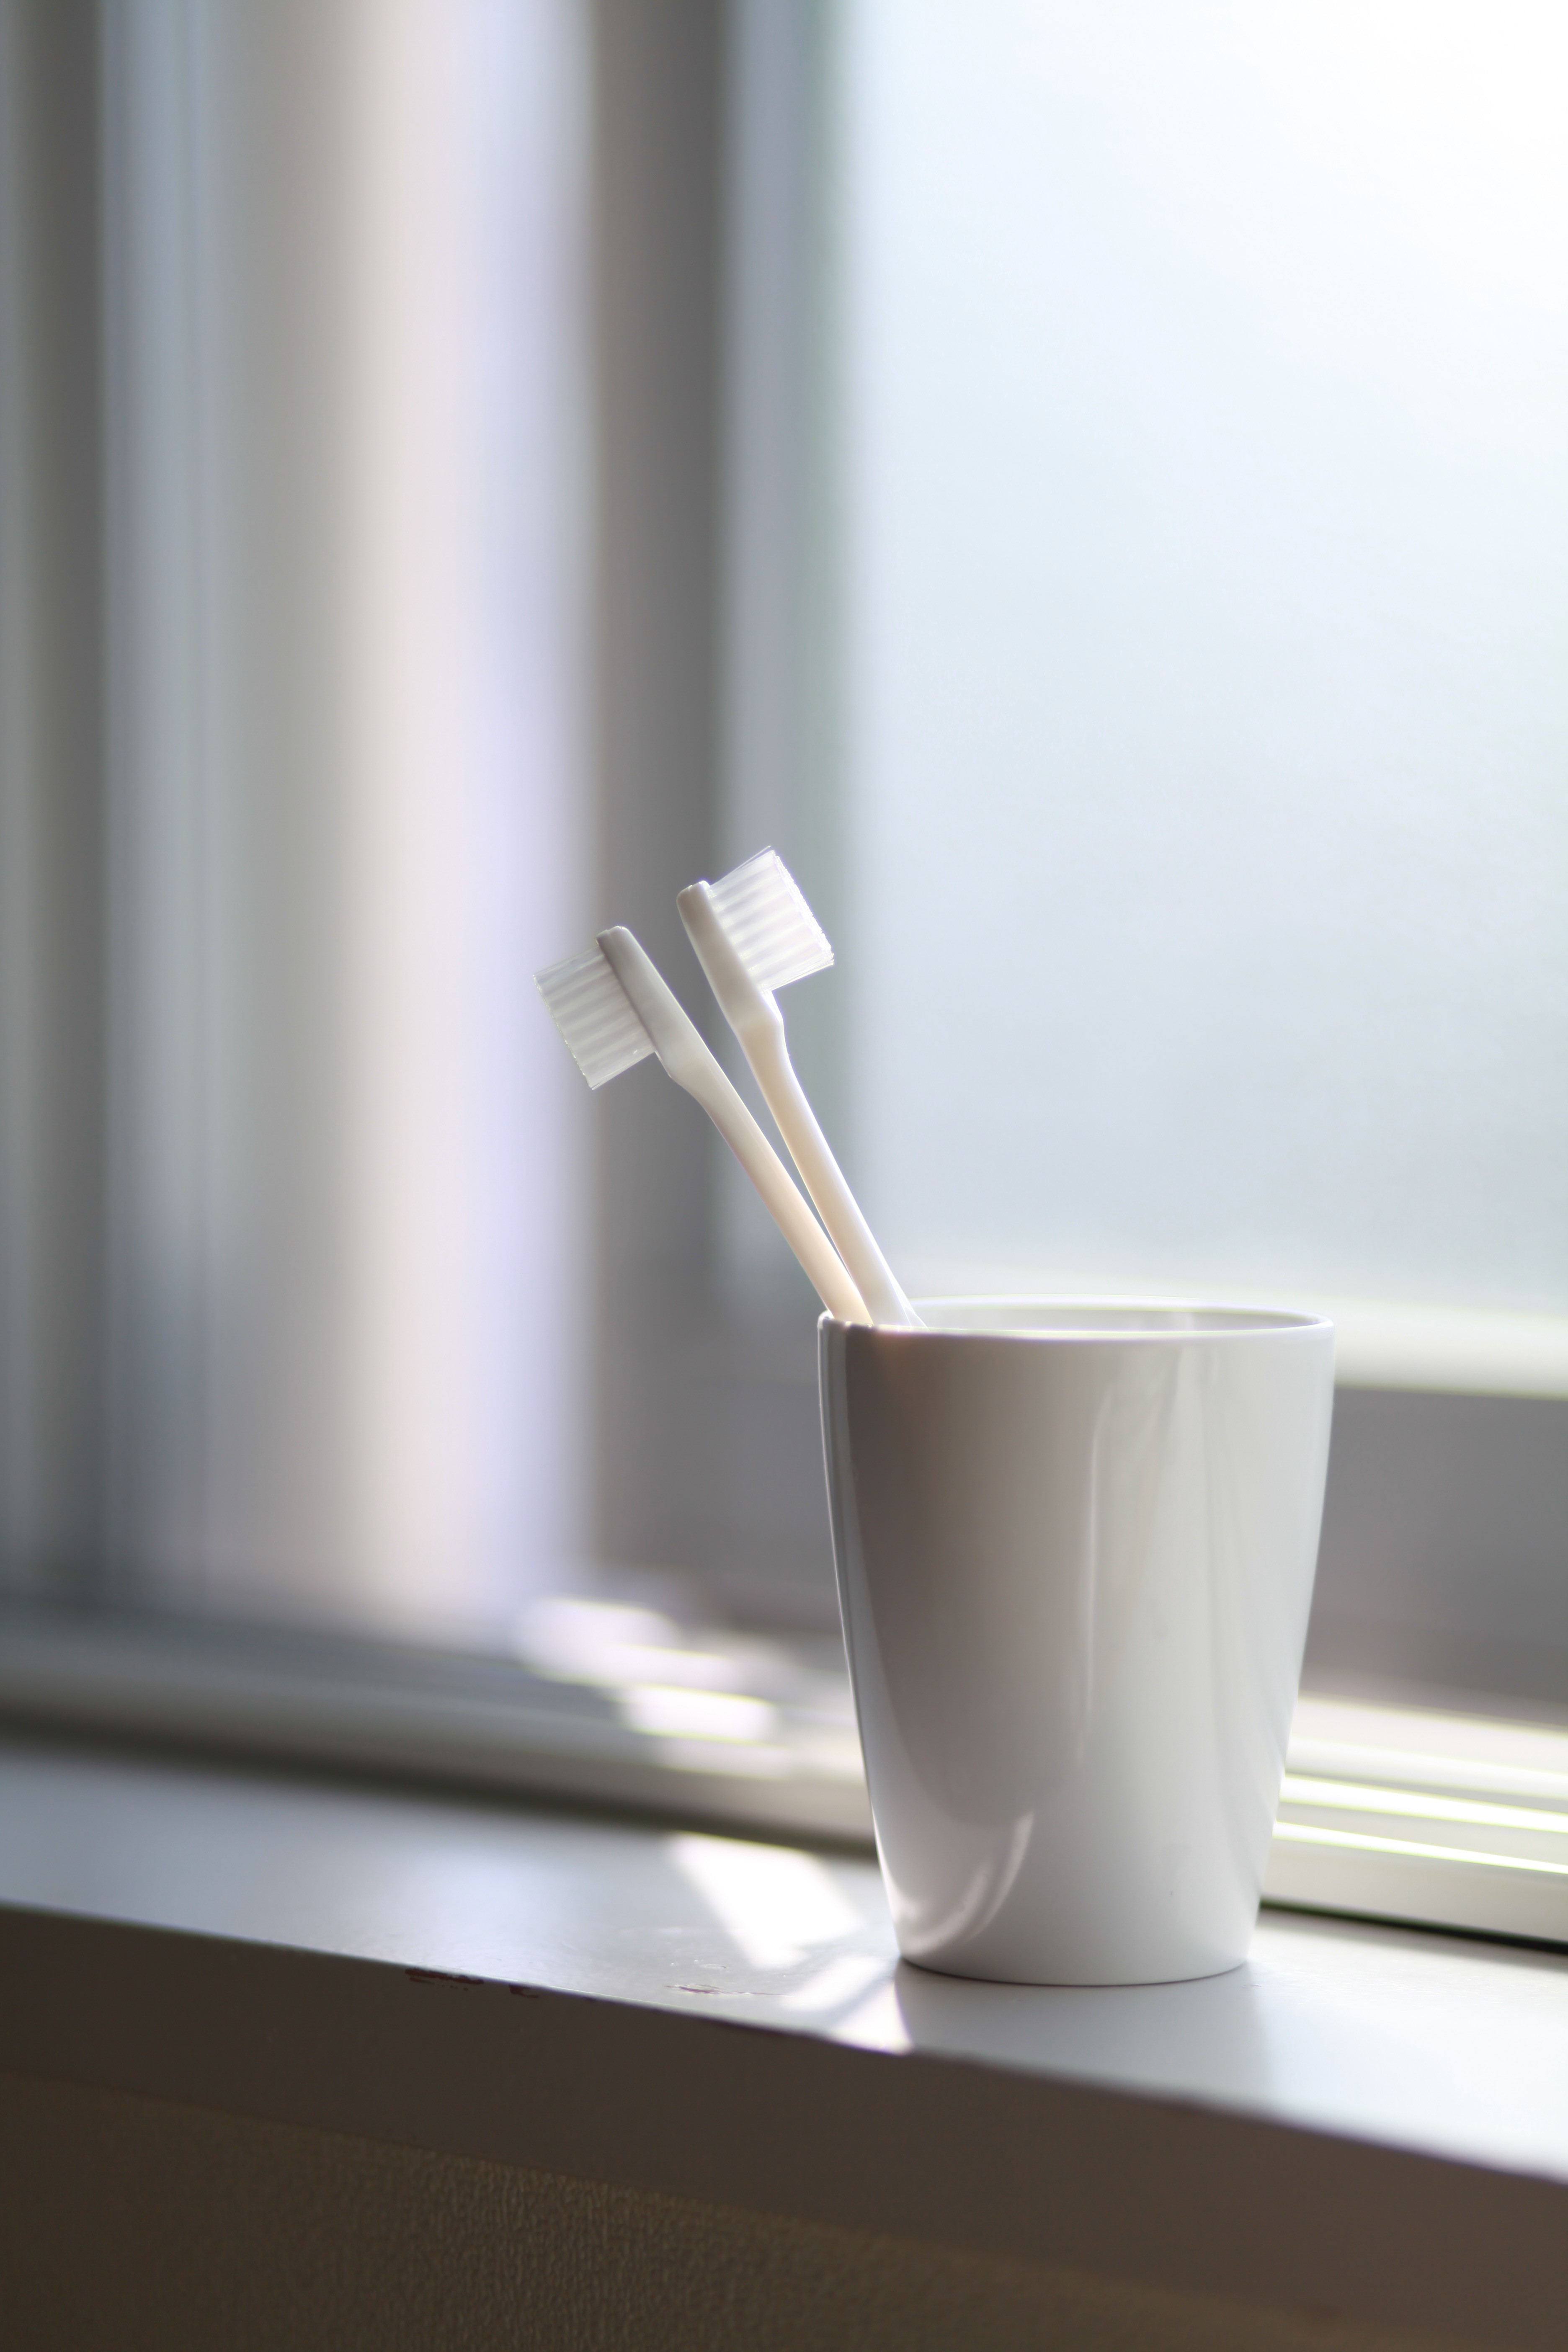 Two White Toothbrush Inside The White Ceramic Cup 183 Free